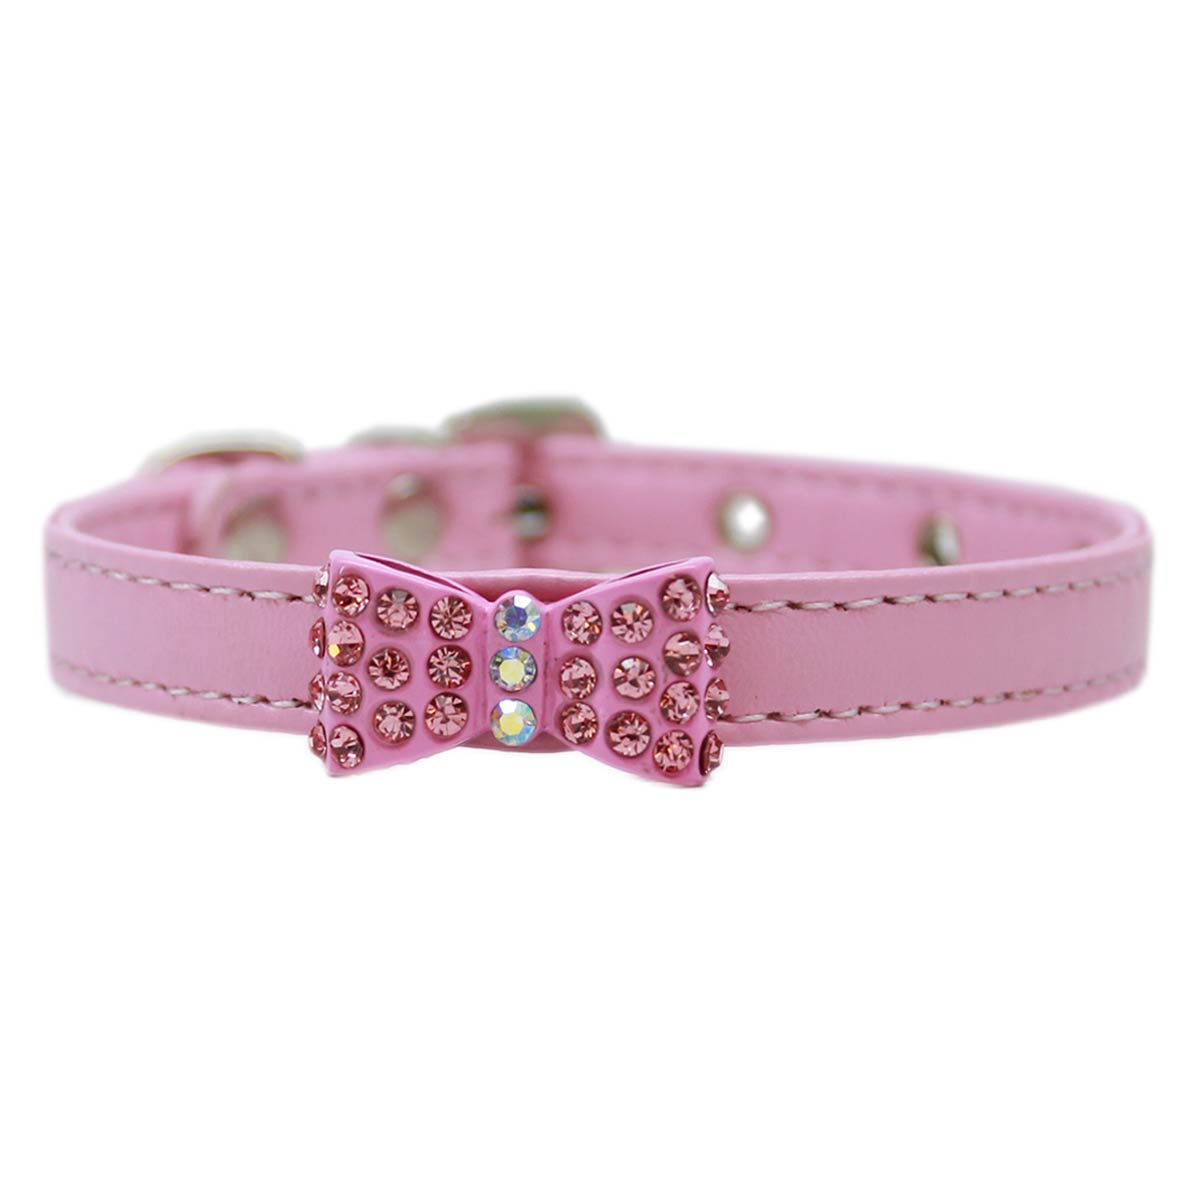 Bow-dacious Crystal Dog Collar - Light Pink